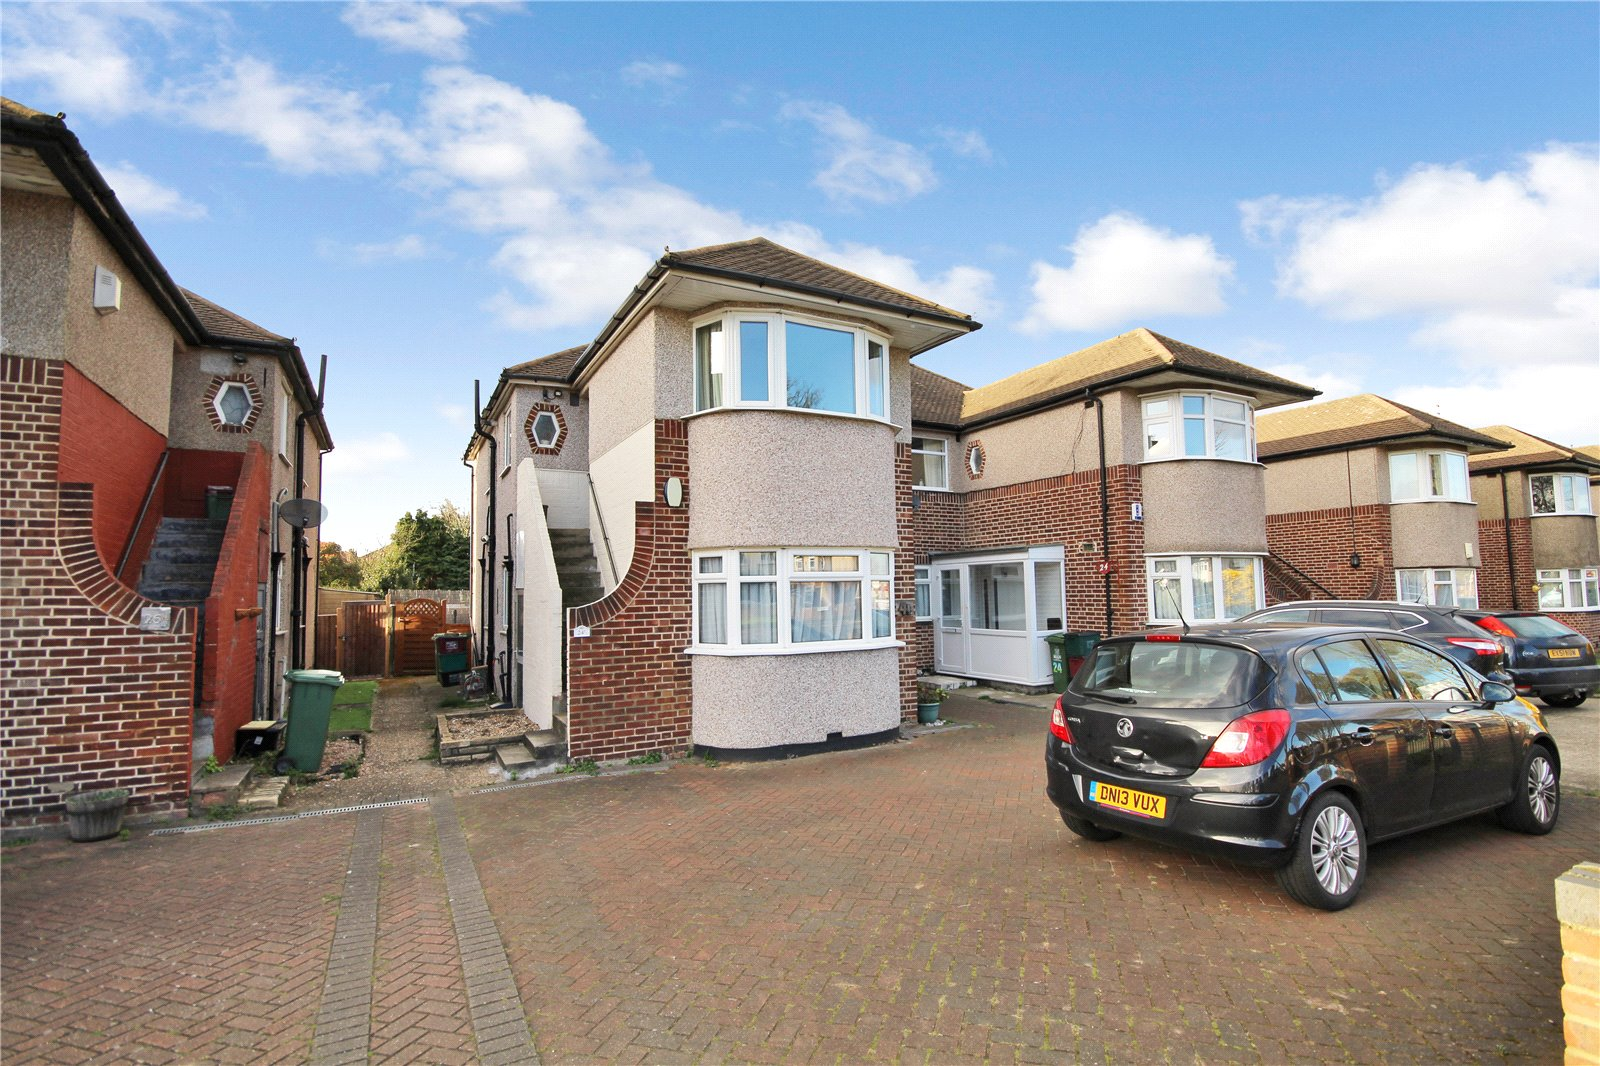 Welling Way, South Welling, Kent, DA16